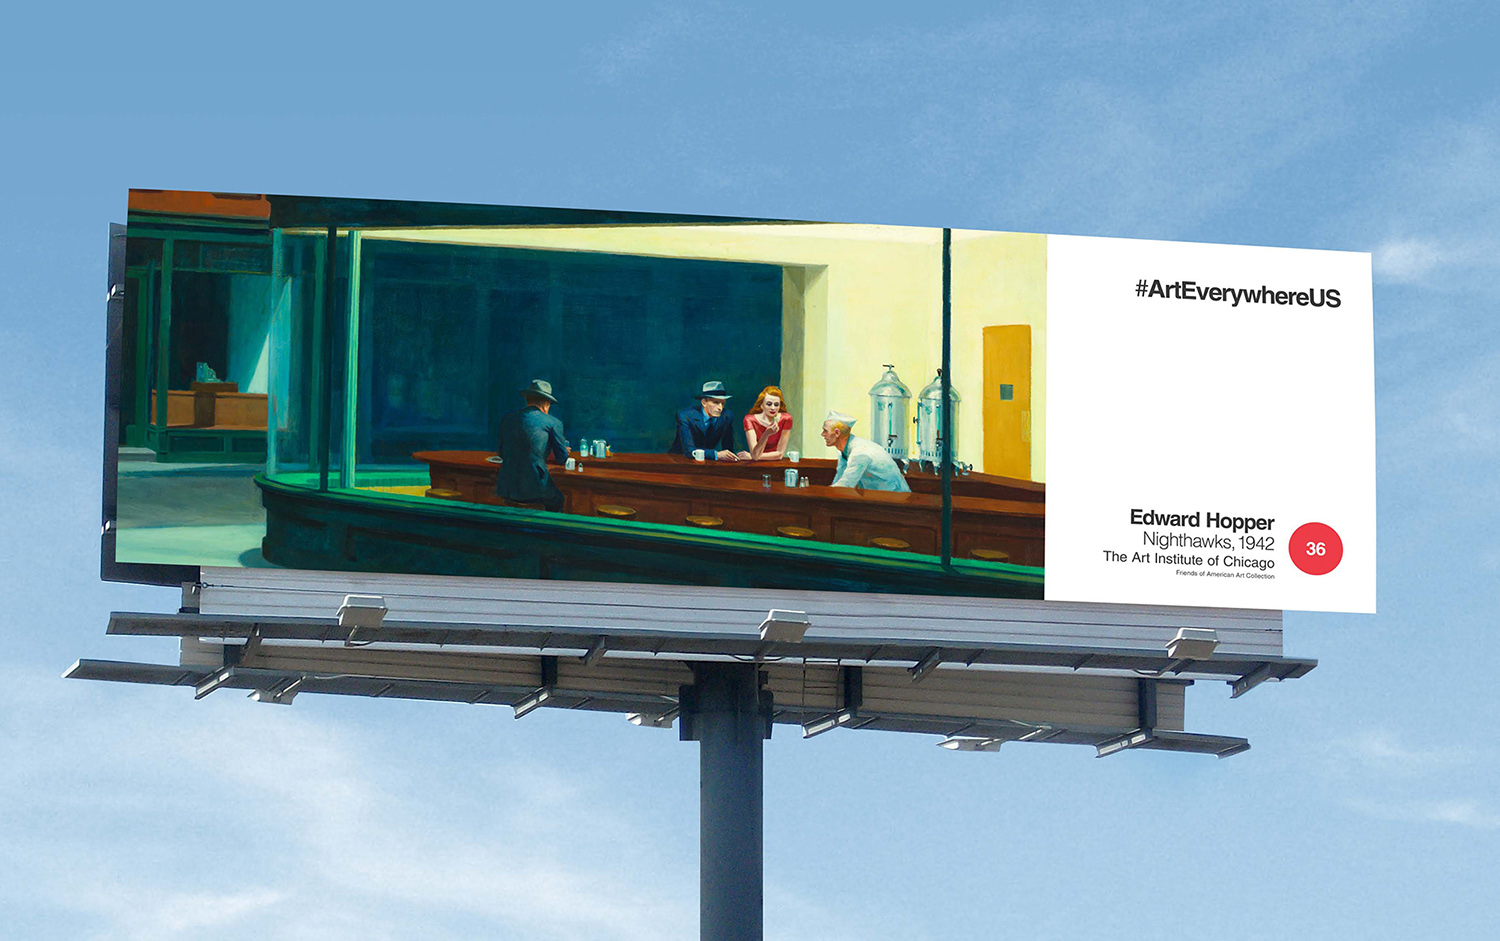 """Edward Hopper's """"Nighthawks"""" on a billboard (image courtesy of Extra Credit Projects)"""